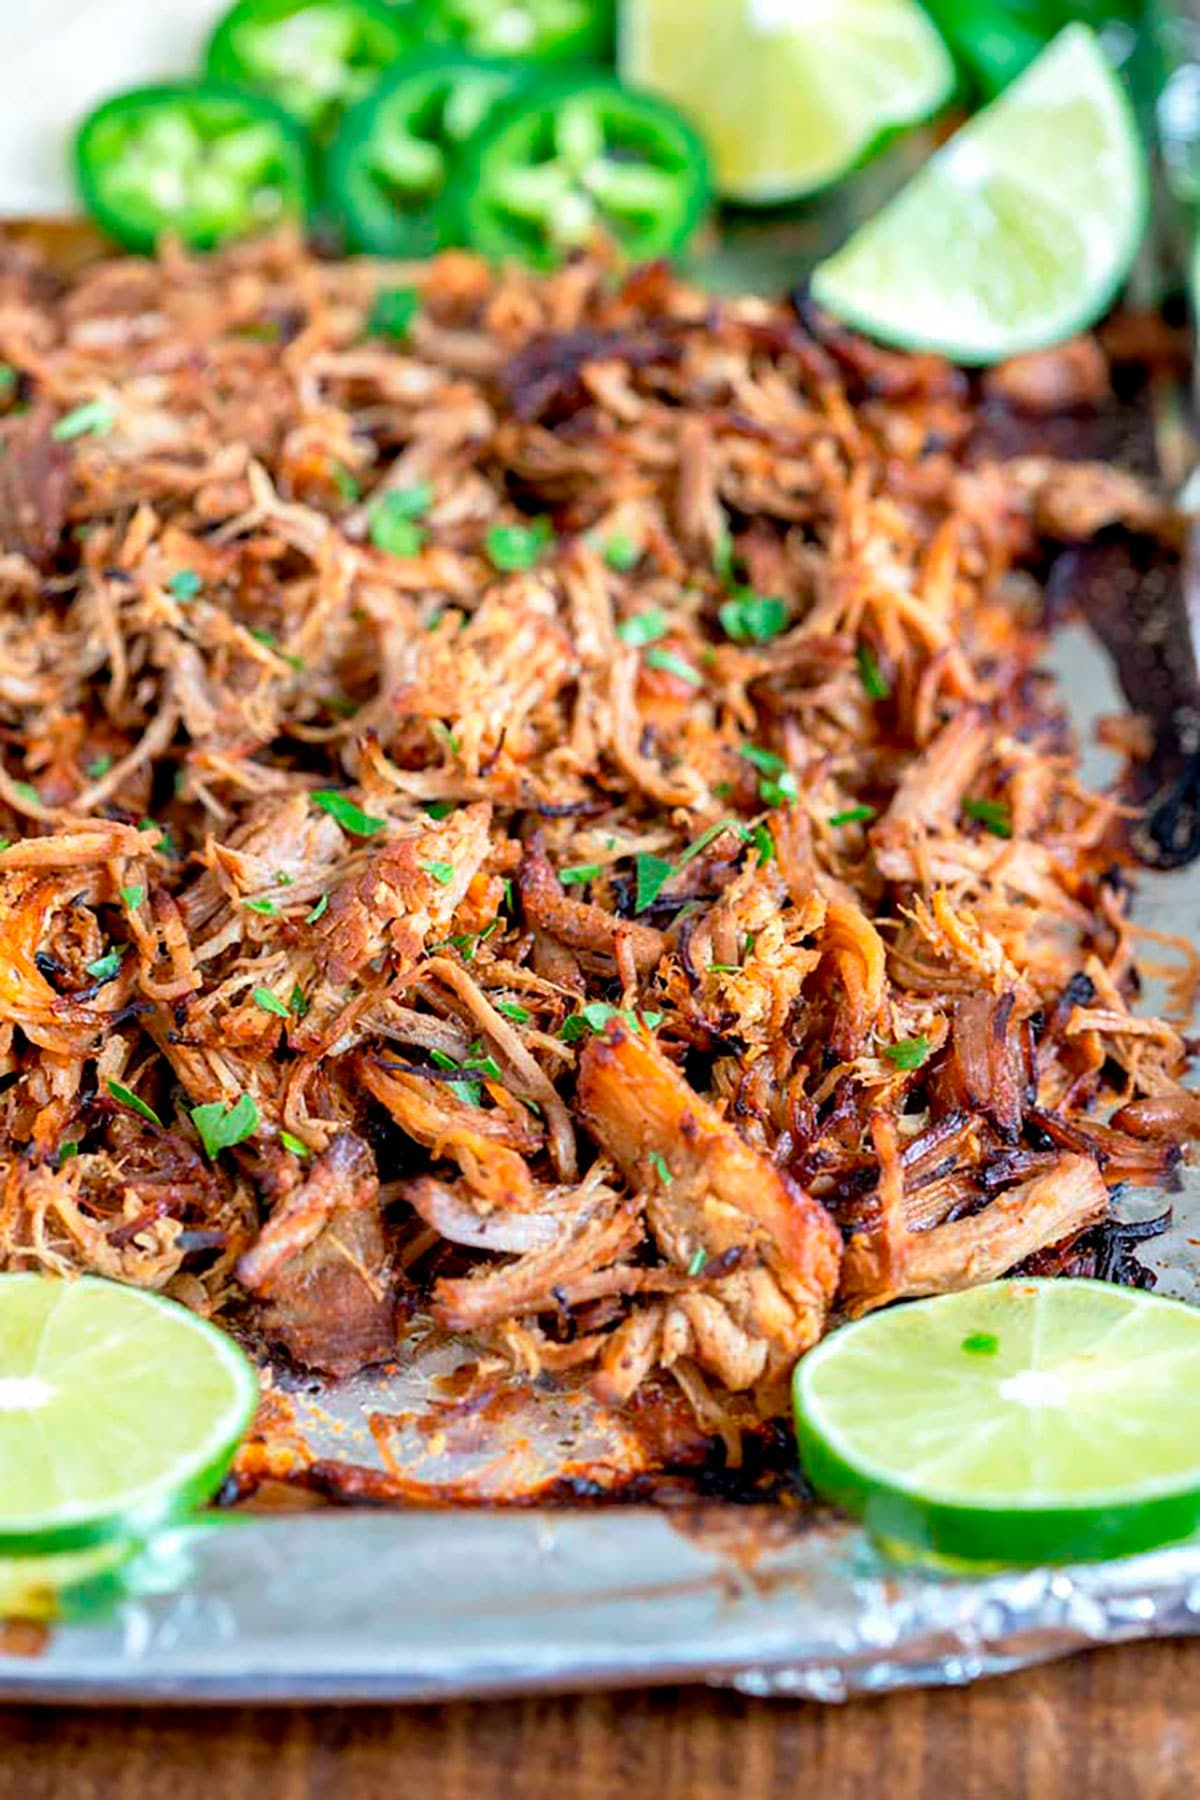 A baking sheet filled with Mexican pulled pork